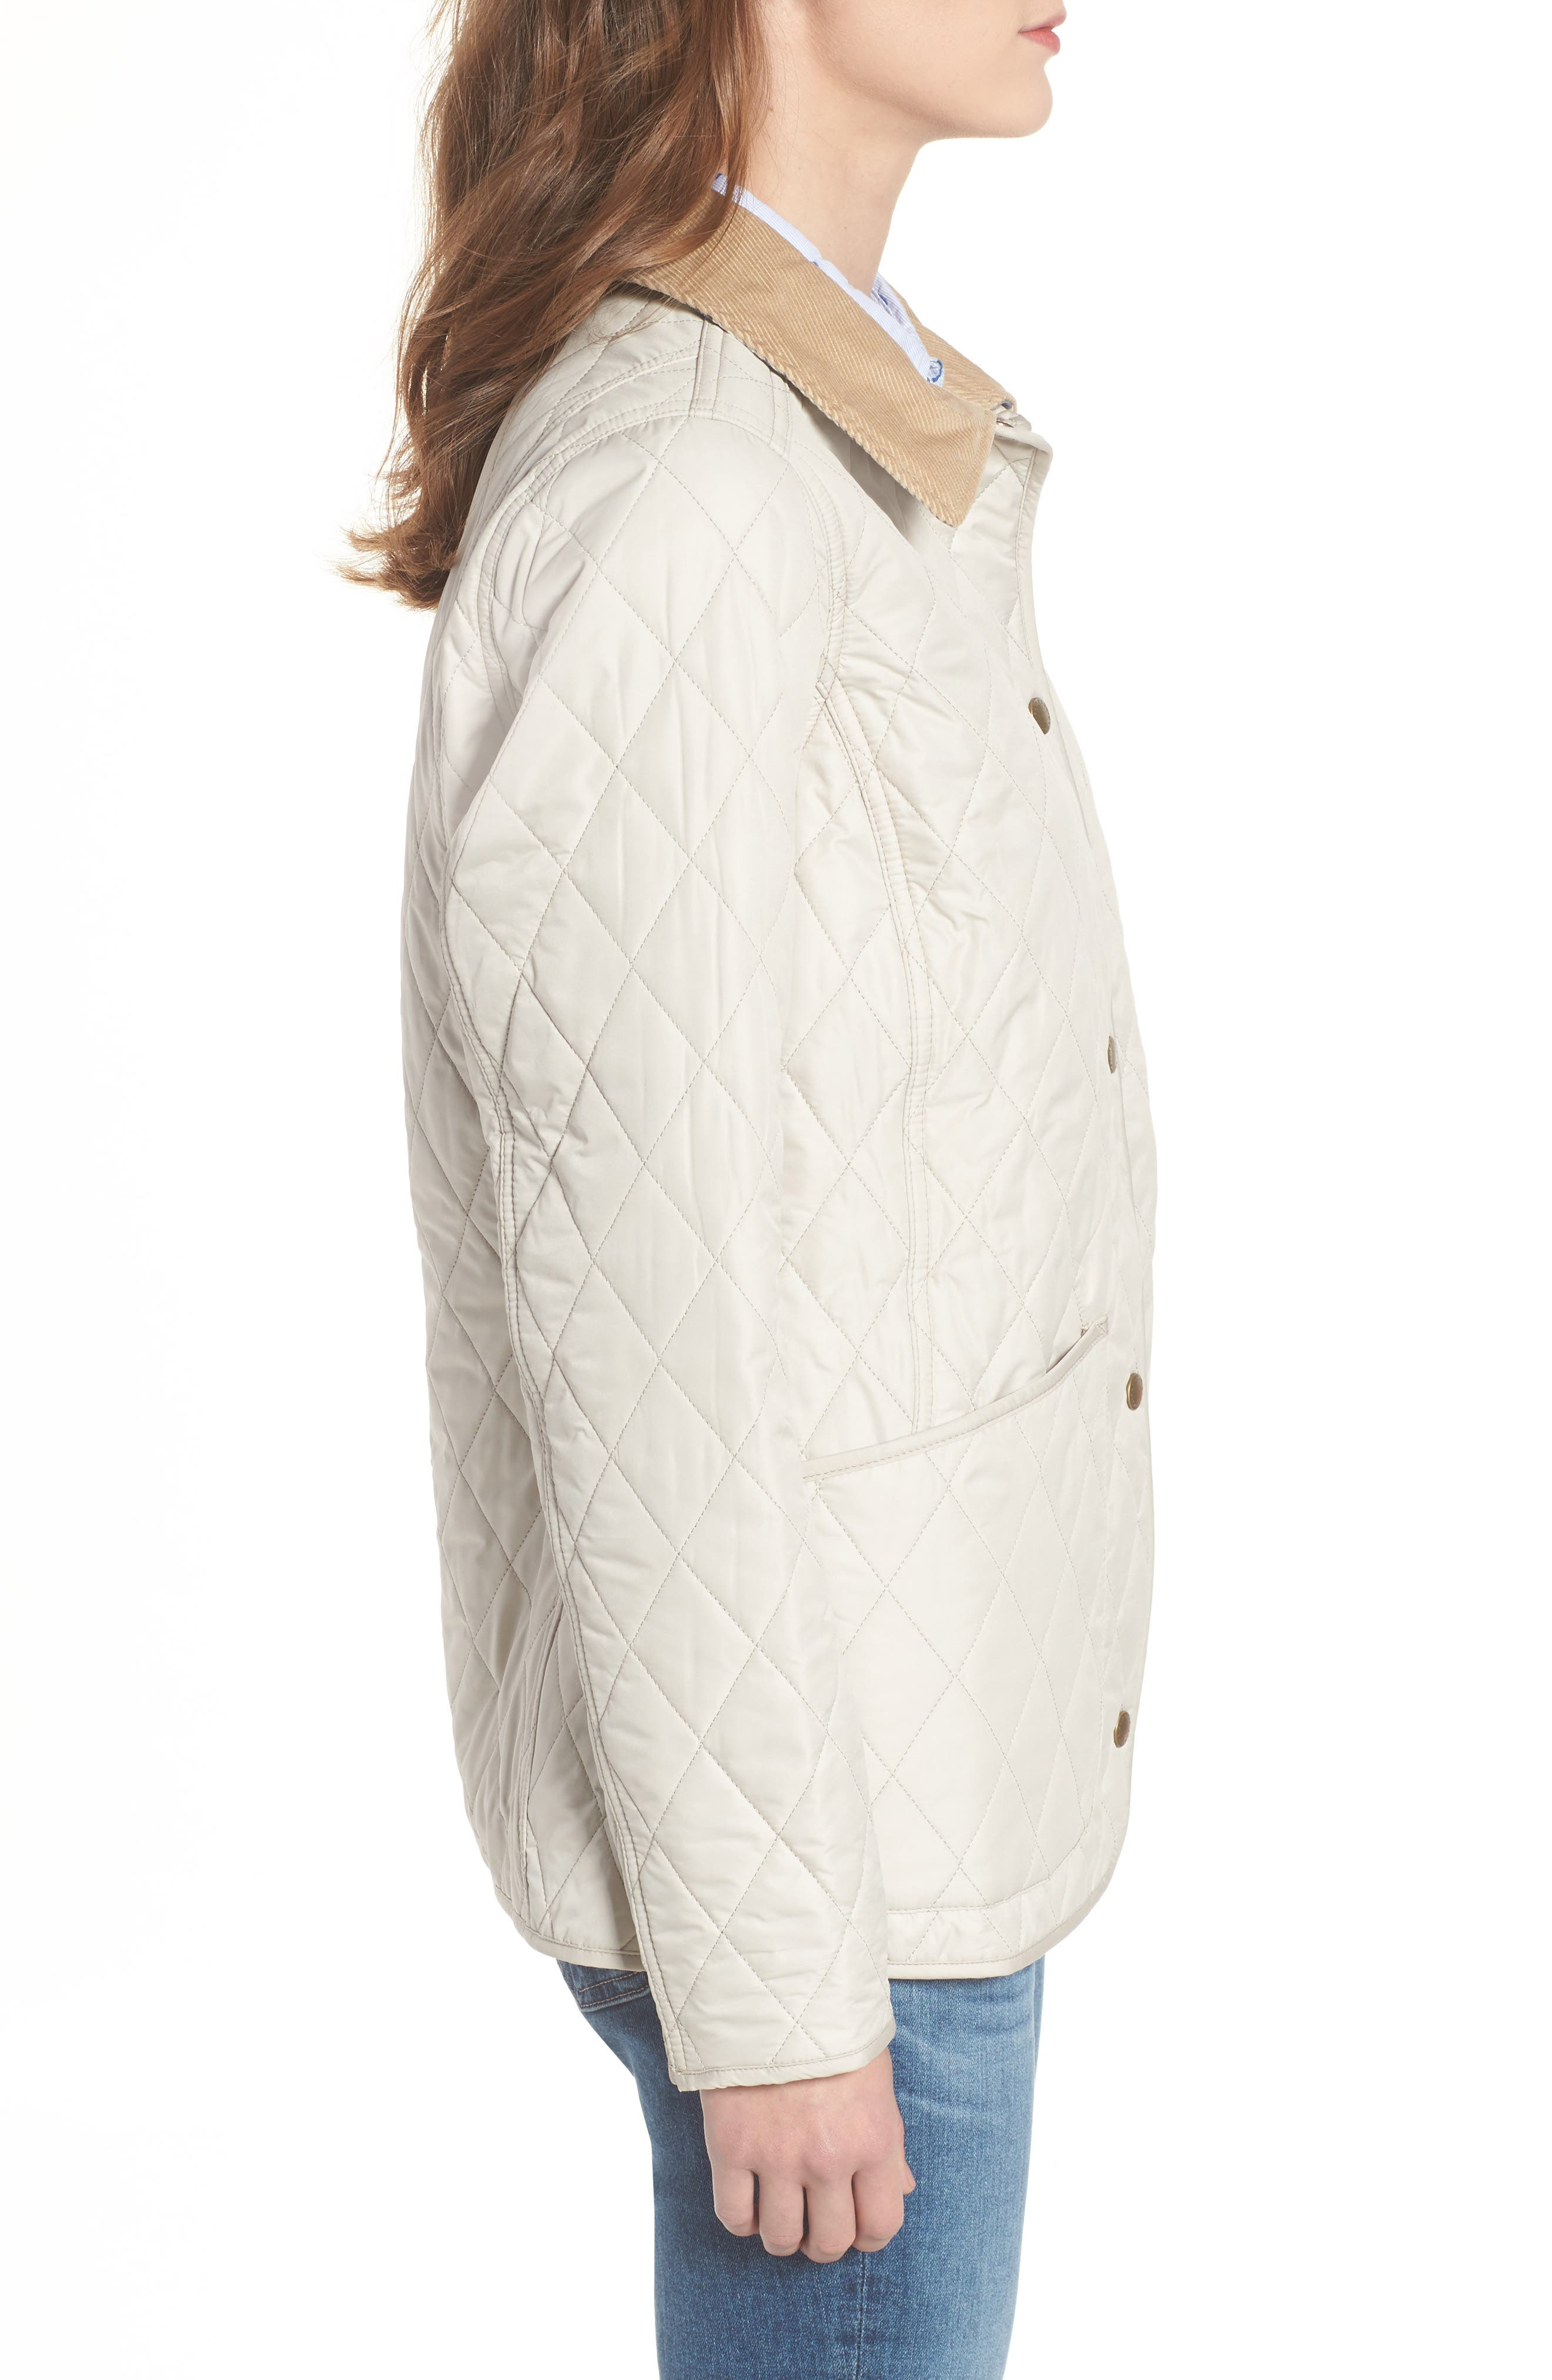 BARBOUR, Spring Annandale Quilted Jacket, Alternate thumbnail 4, color, 270